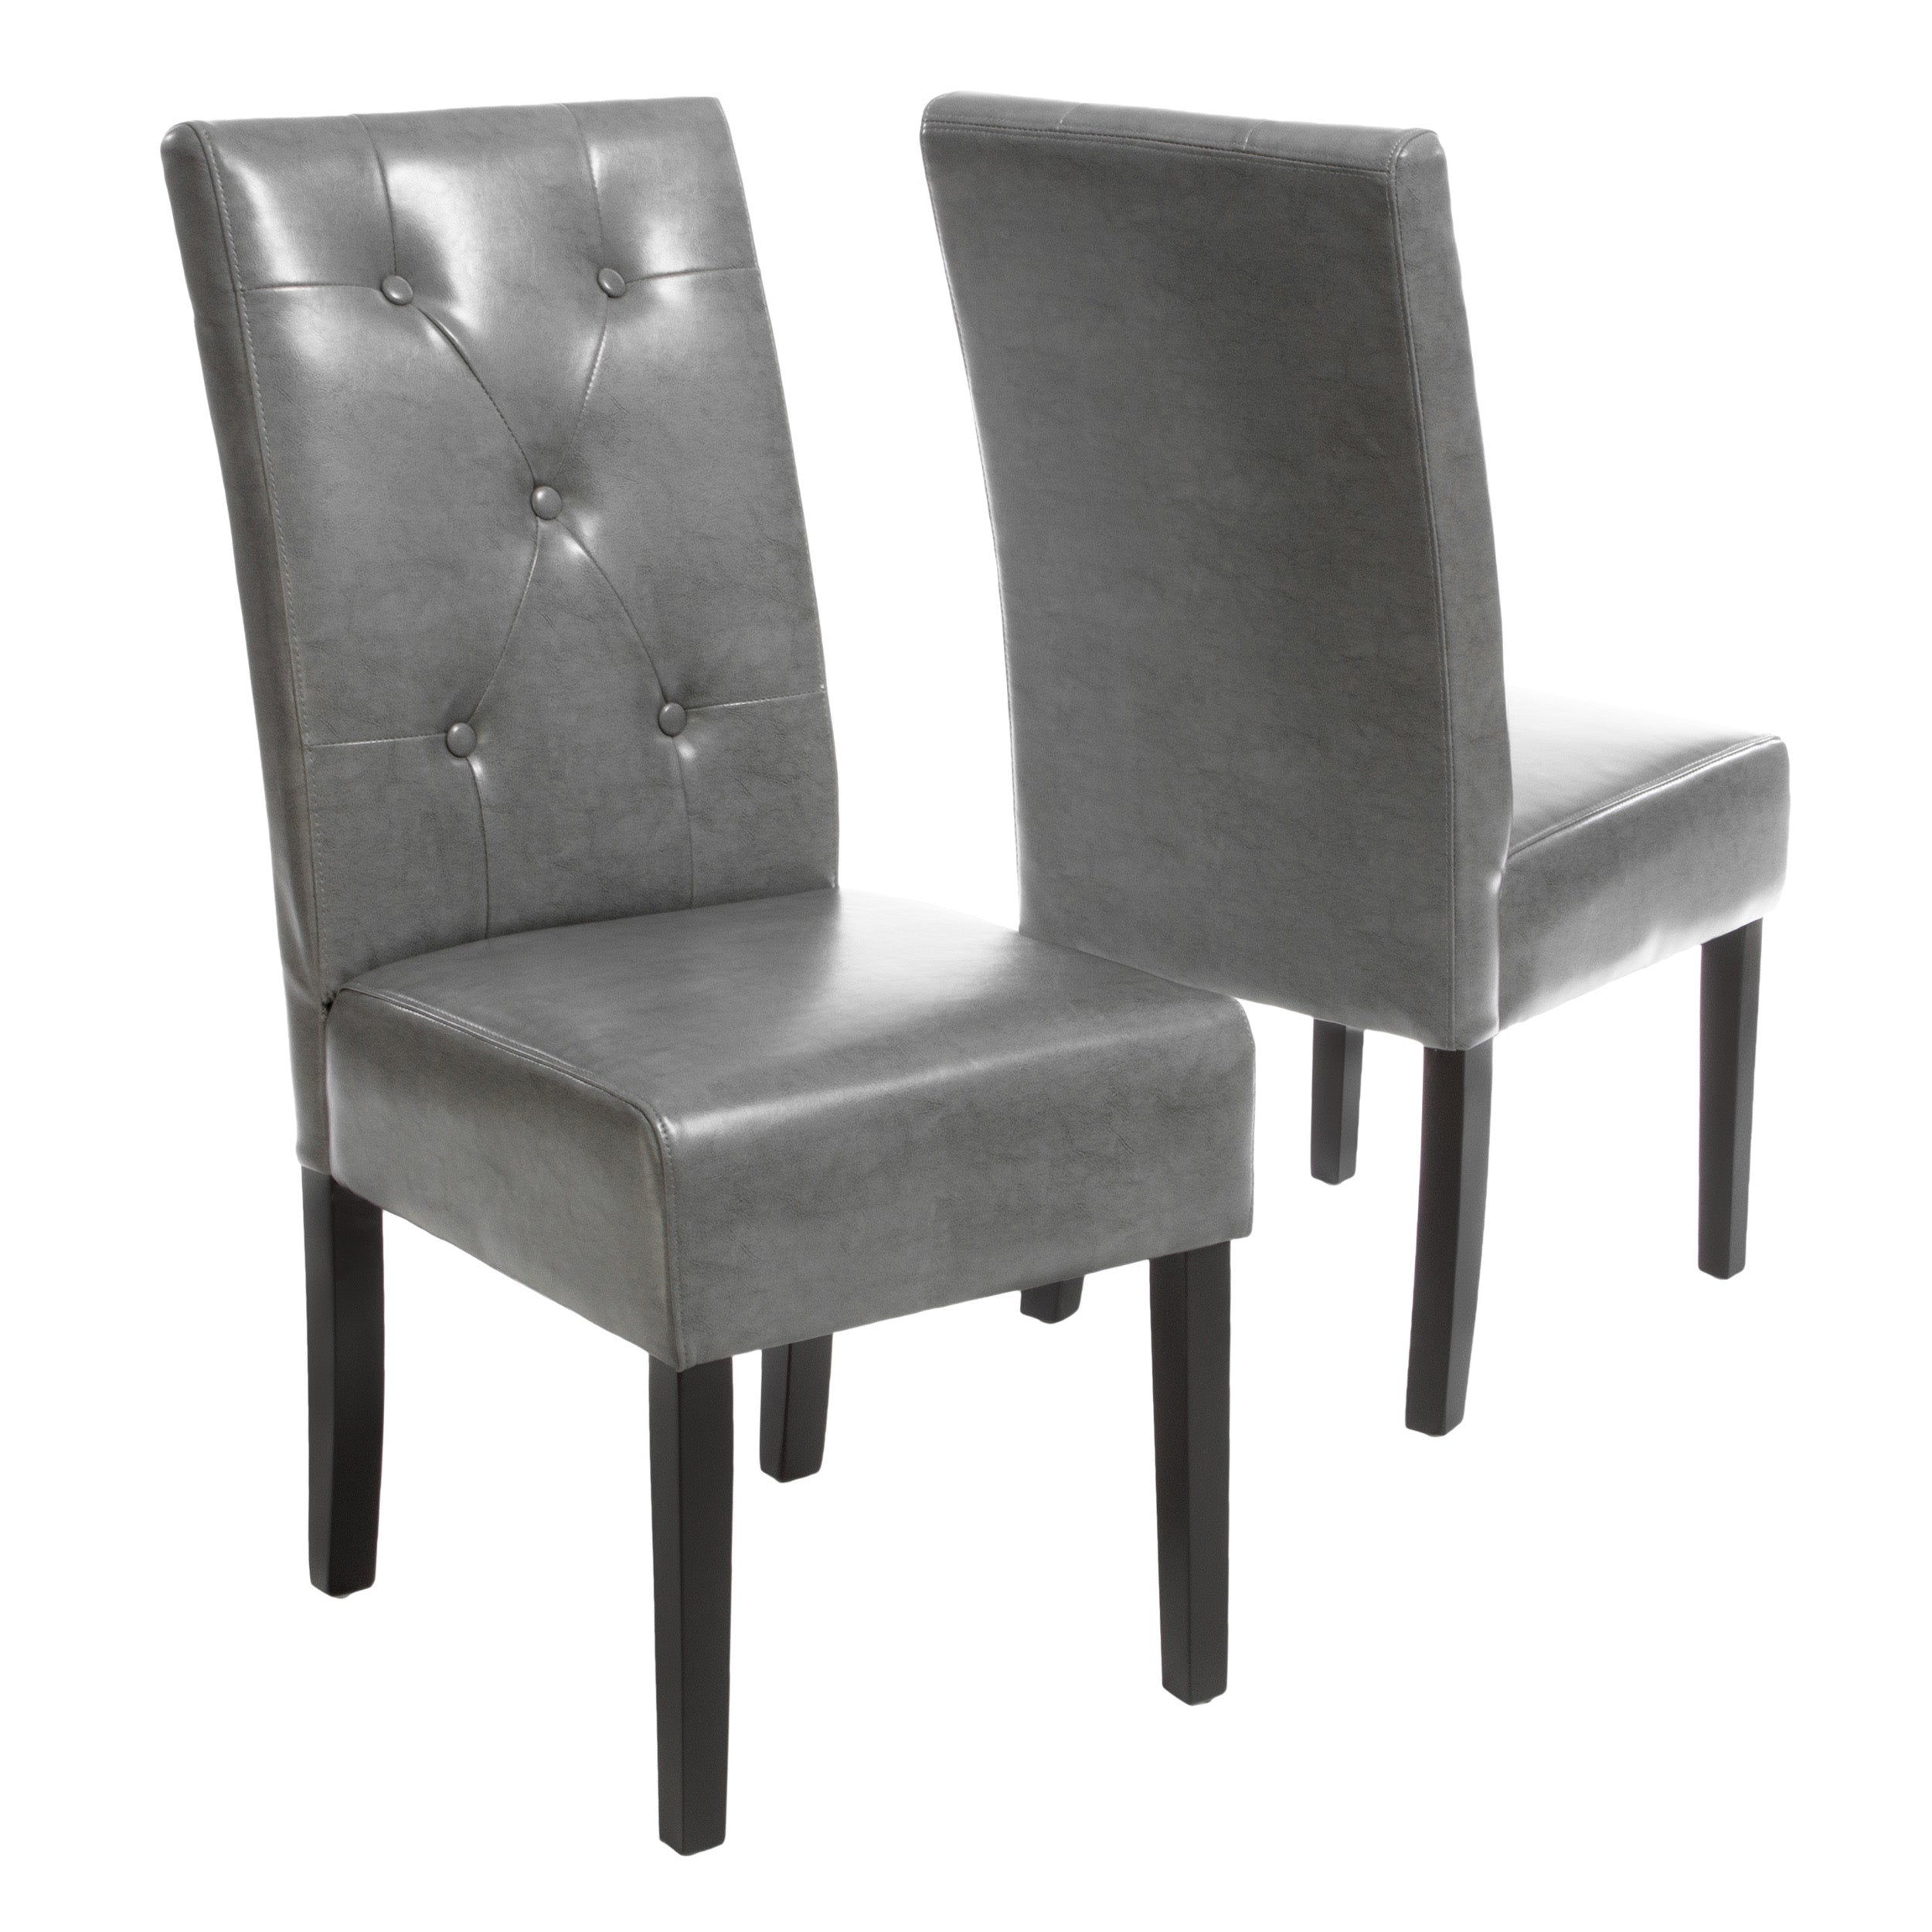 Alexander Bonded Leather Dining Chair Teal Blue